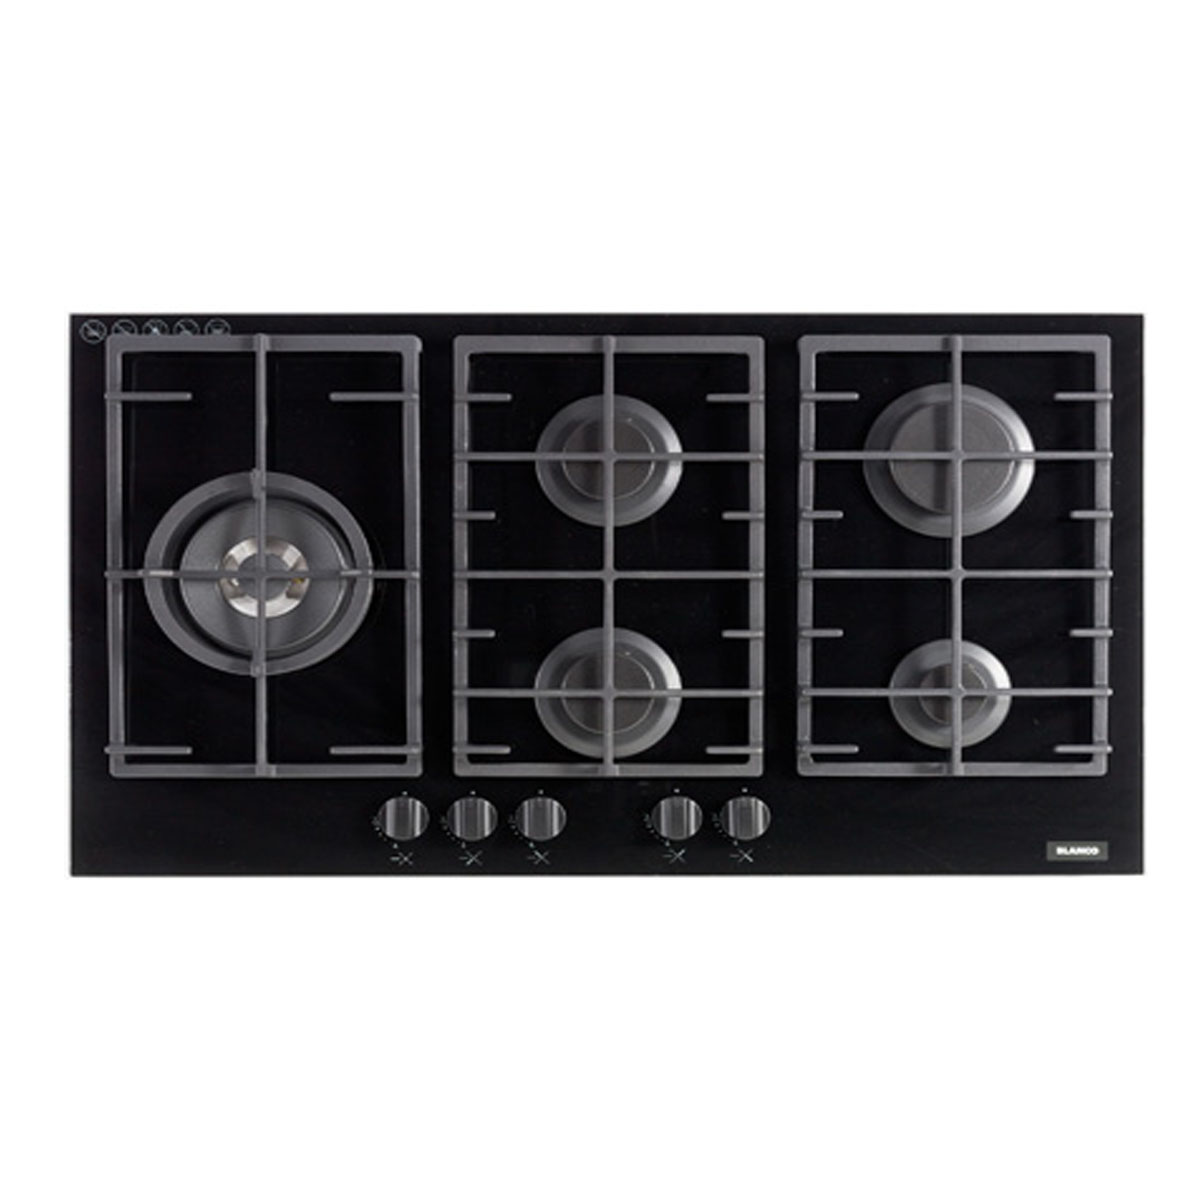 Blanco Gas Cooktop CGG905WFFC